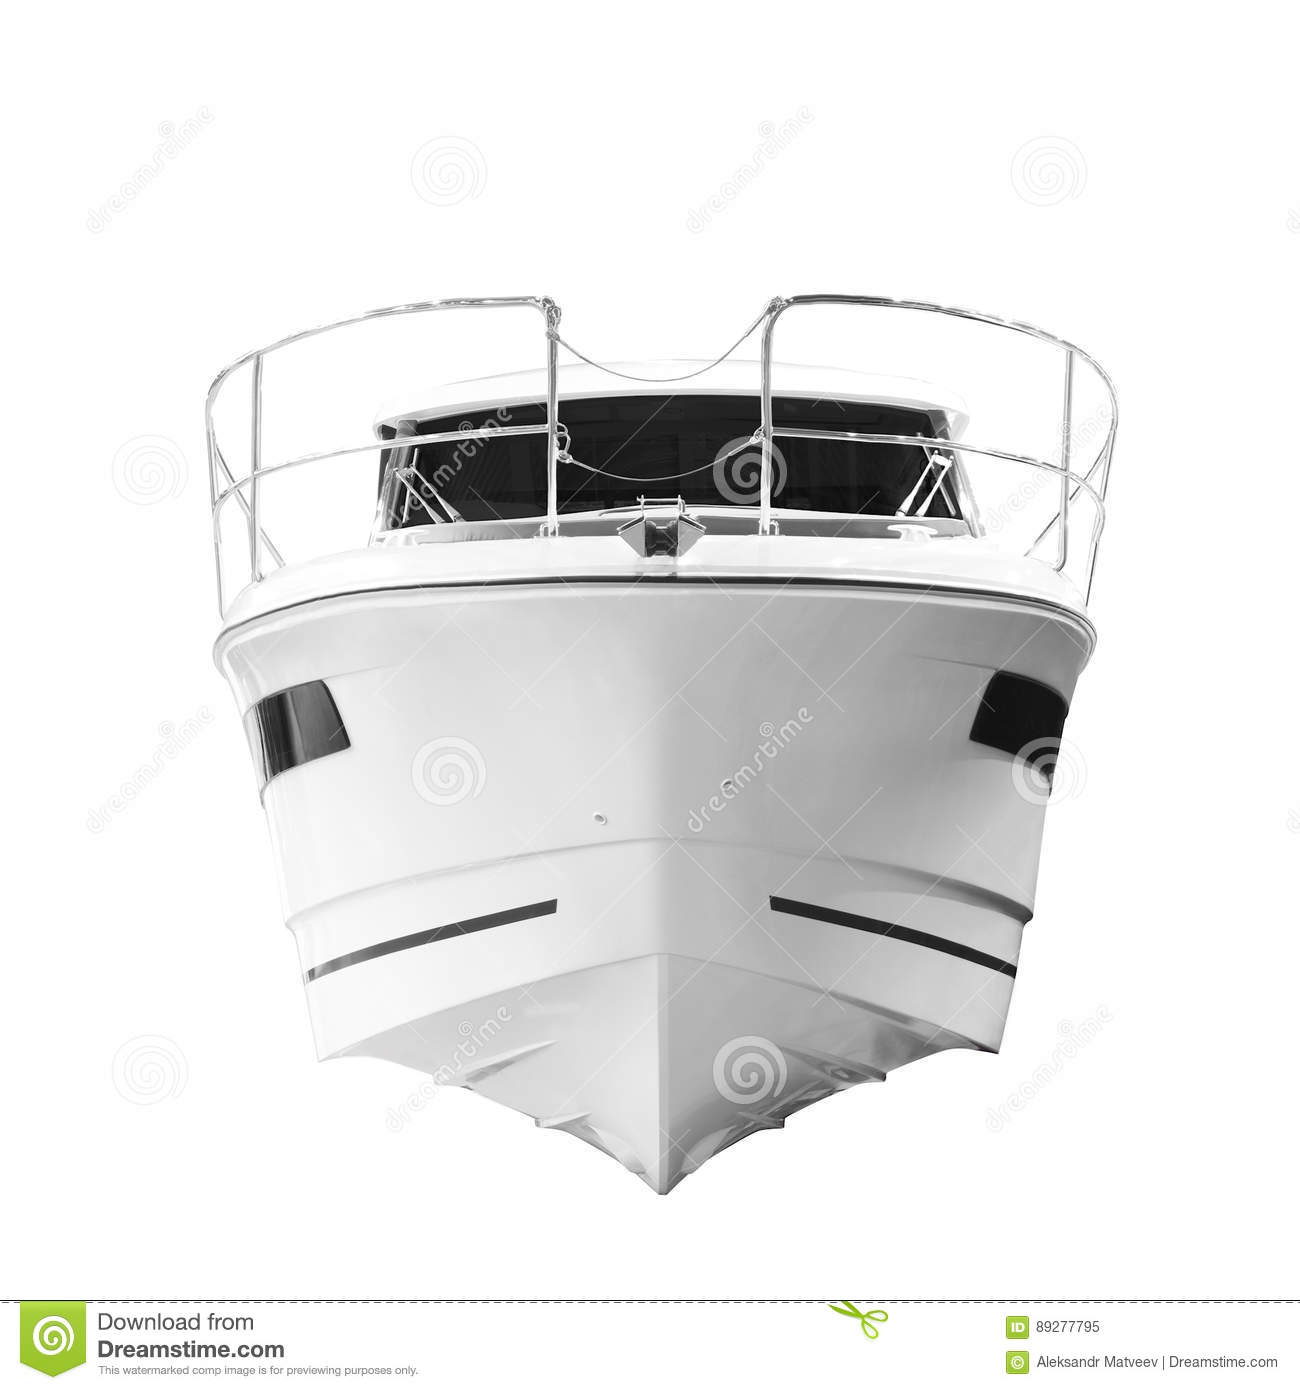 Bow Of A Boat >> The Image Of An Passenger Motor Boat Bow Of The Ship Front View